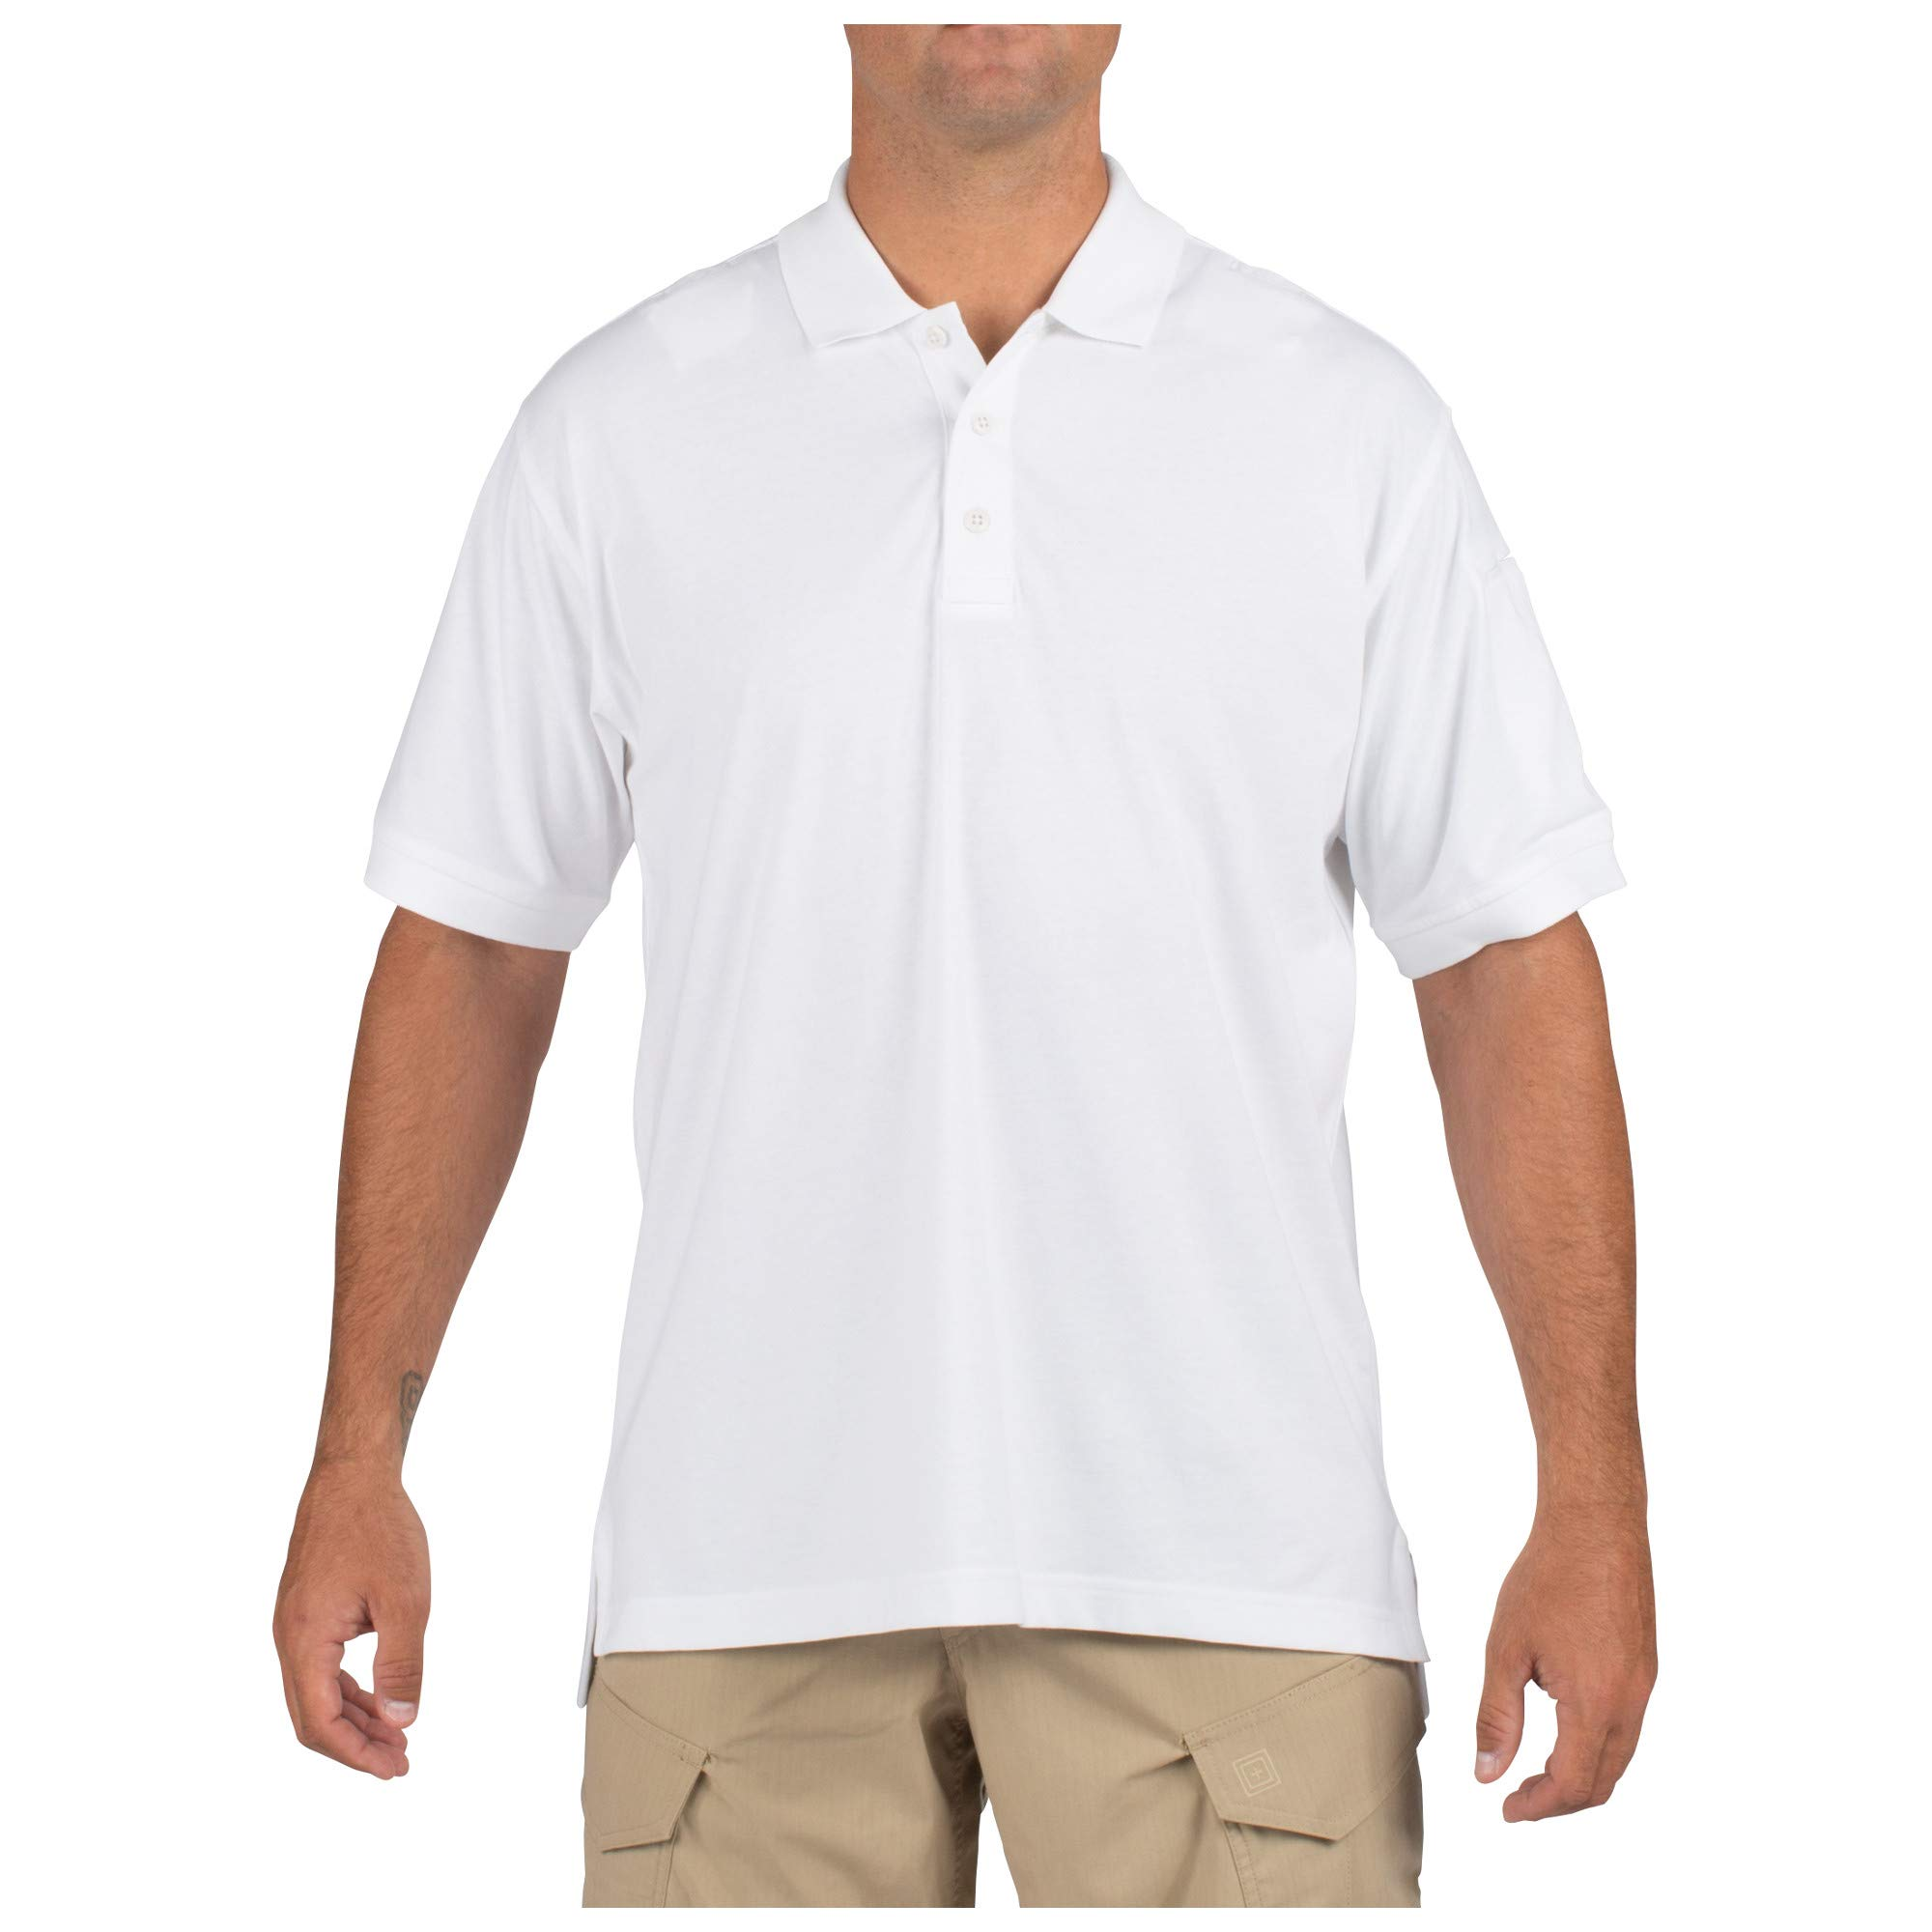 5.11 Tactical Tactical Short-Sleeve Polo,White,Large, White, Large